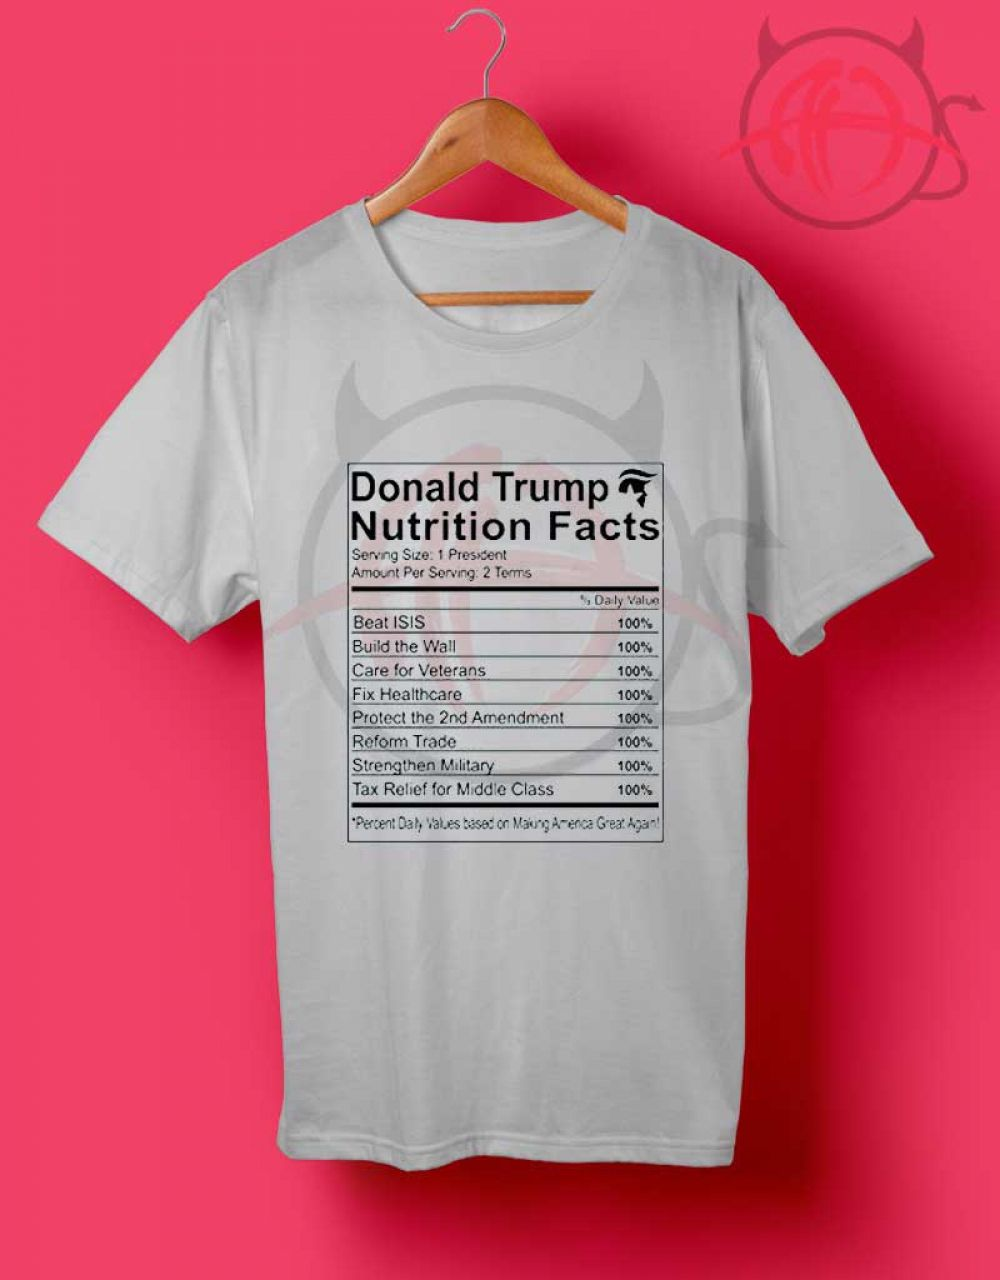 cbe37e785 Donald Trump Nutrition Facts Make America Great T Shirt $ 14.50 #Tee #Hype  #Outfits #Outfit #Hypebeast #fashion #shirt #Tees #Tops #Teen